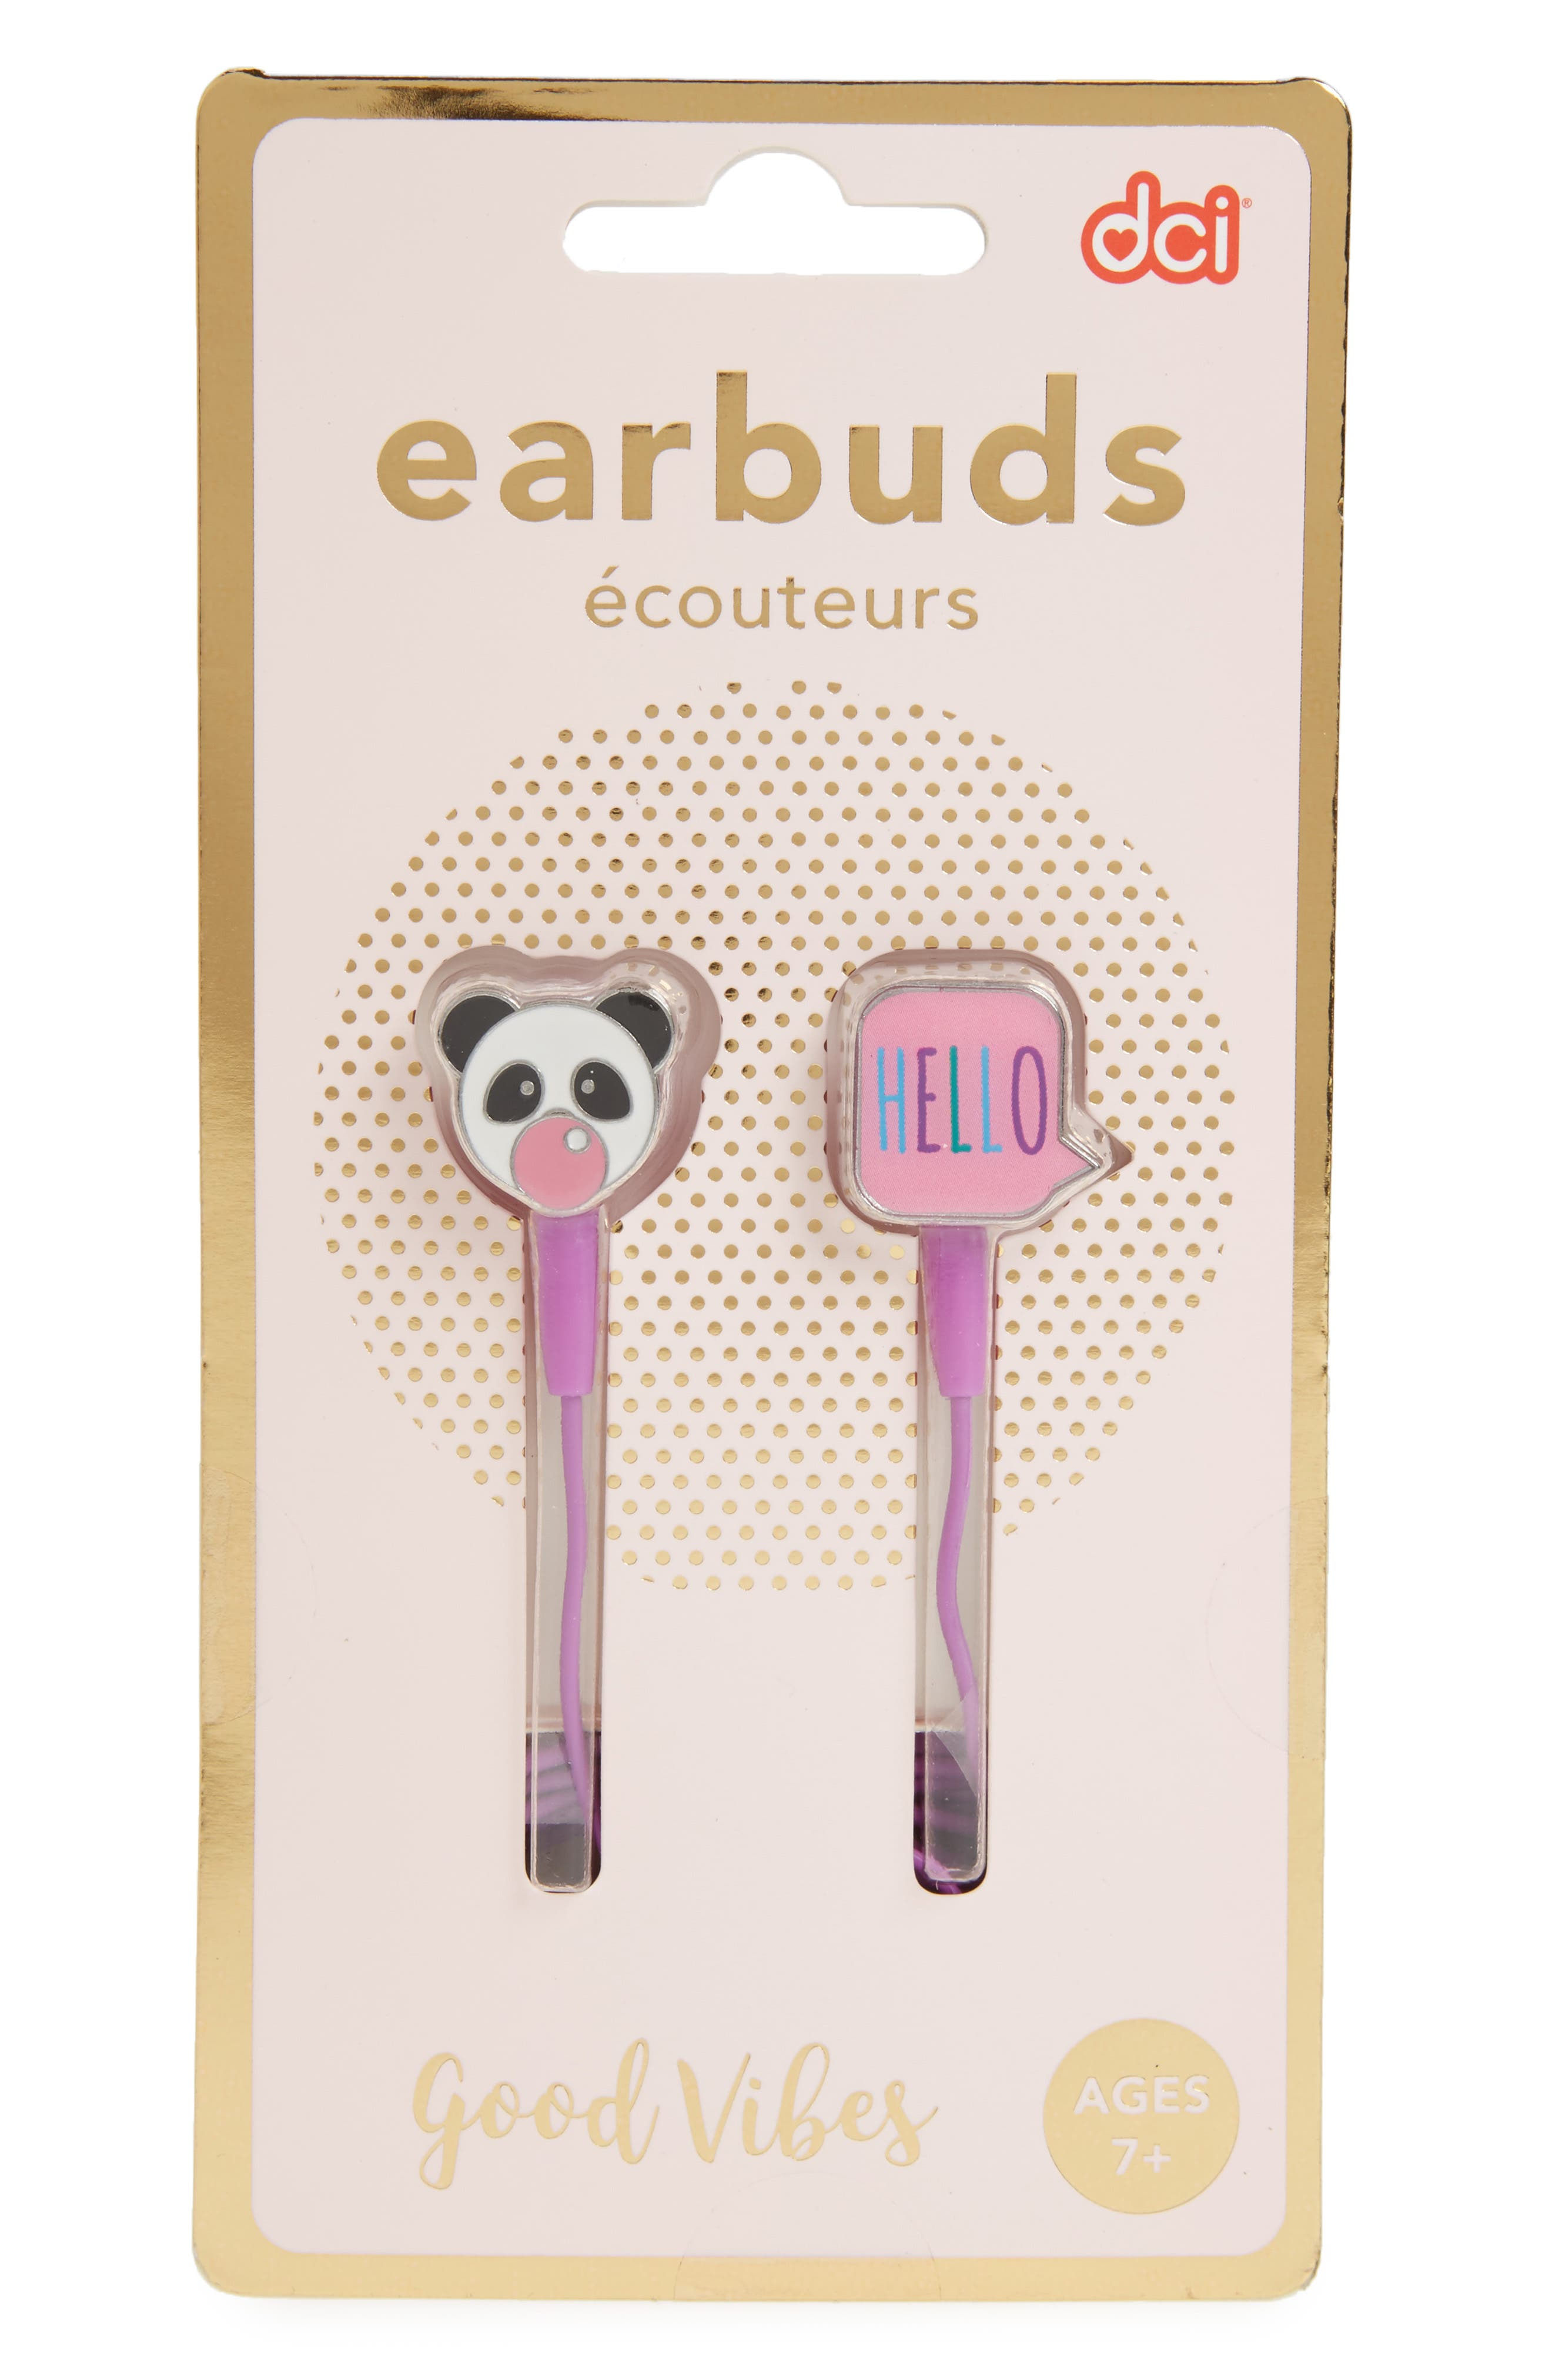 Good Vibes Earbuds,                             Main thumbnail 1, color,                             Pink Multi